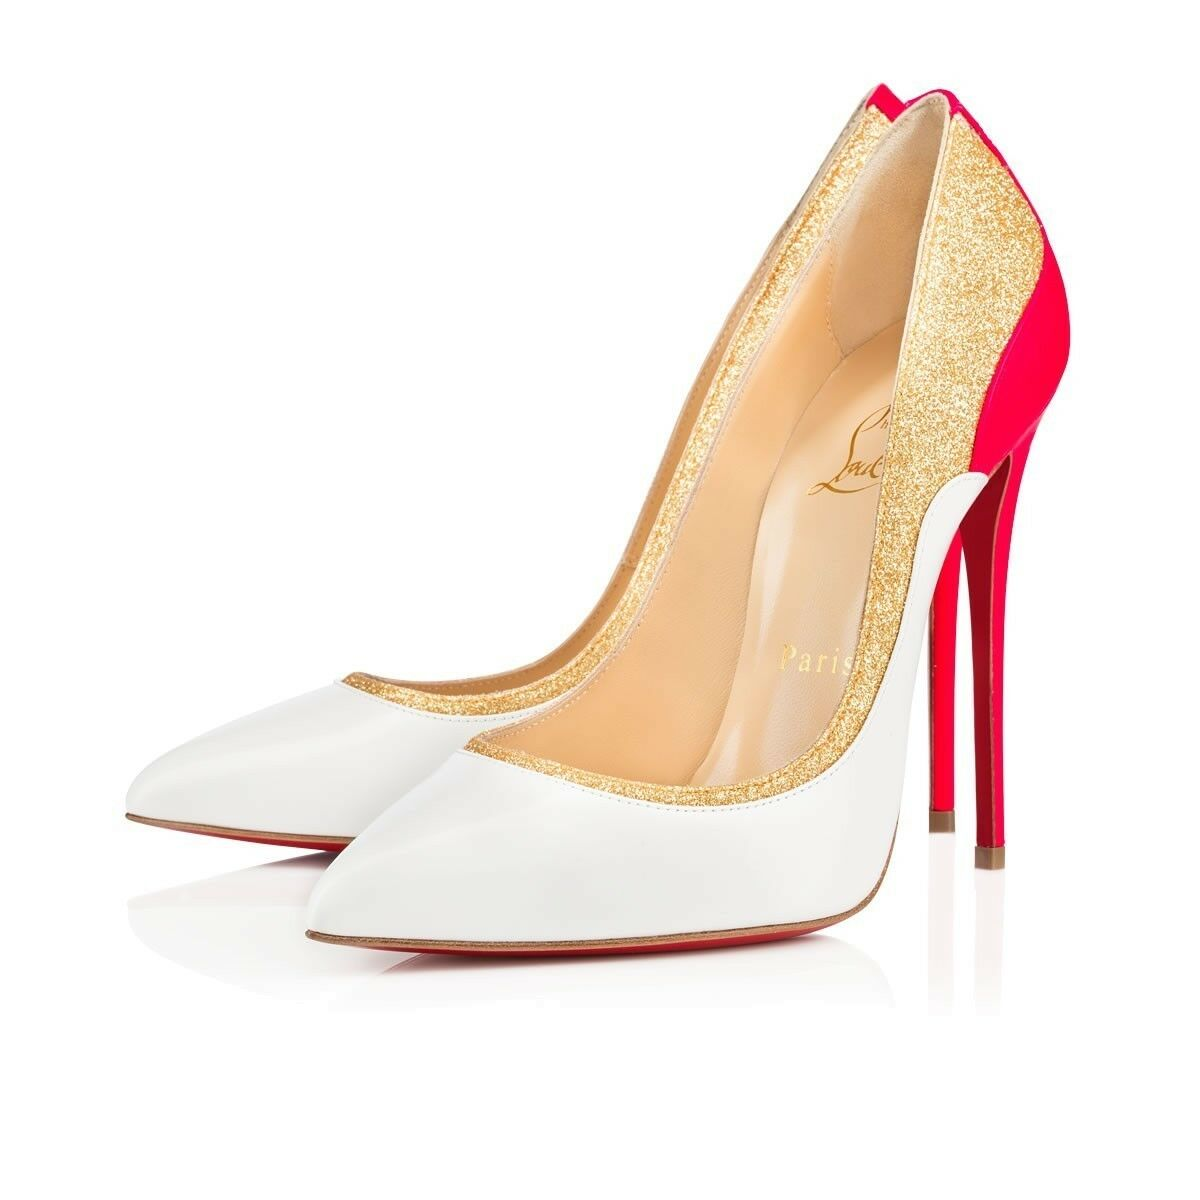 100% AUTH NEW WOMEN LOUBOUTIN TUCSICK 100 JAZZ CALF/GLITTER PUMPS/HEELS US 10